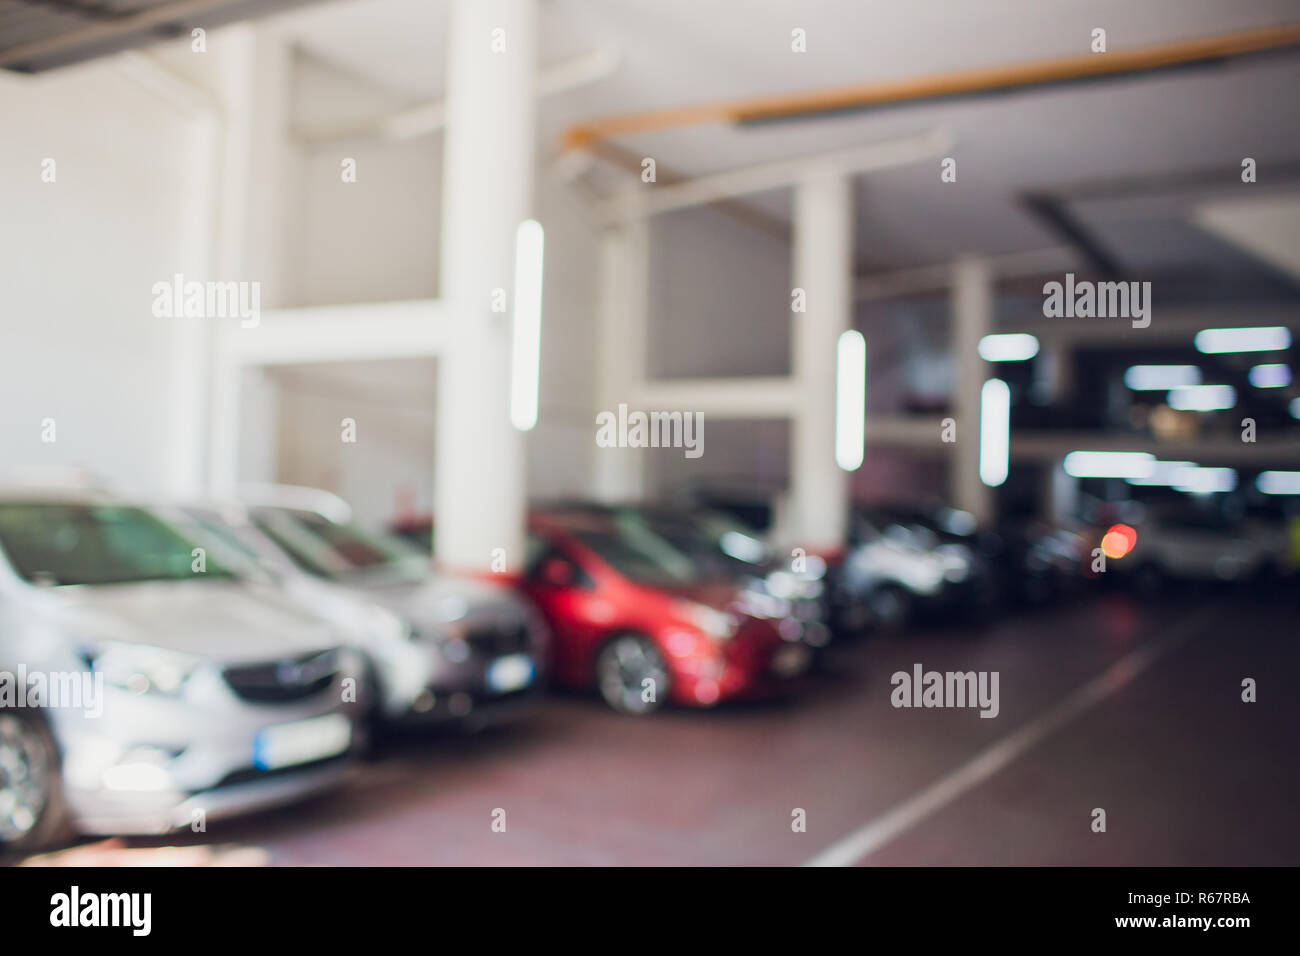 Shopping Mall Car Park High Resolution Stock Photography And Images Alamy